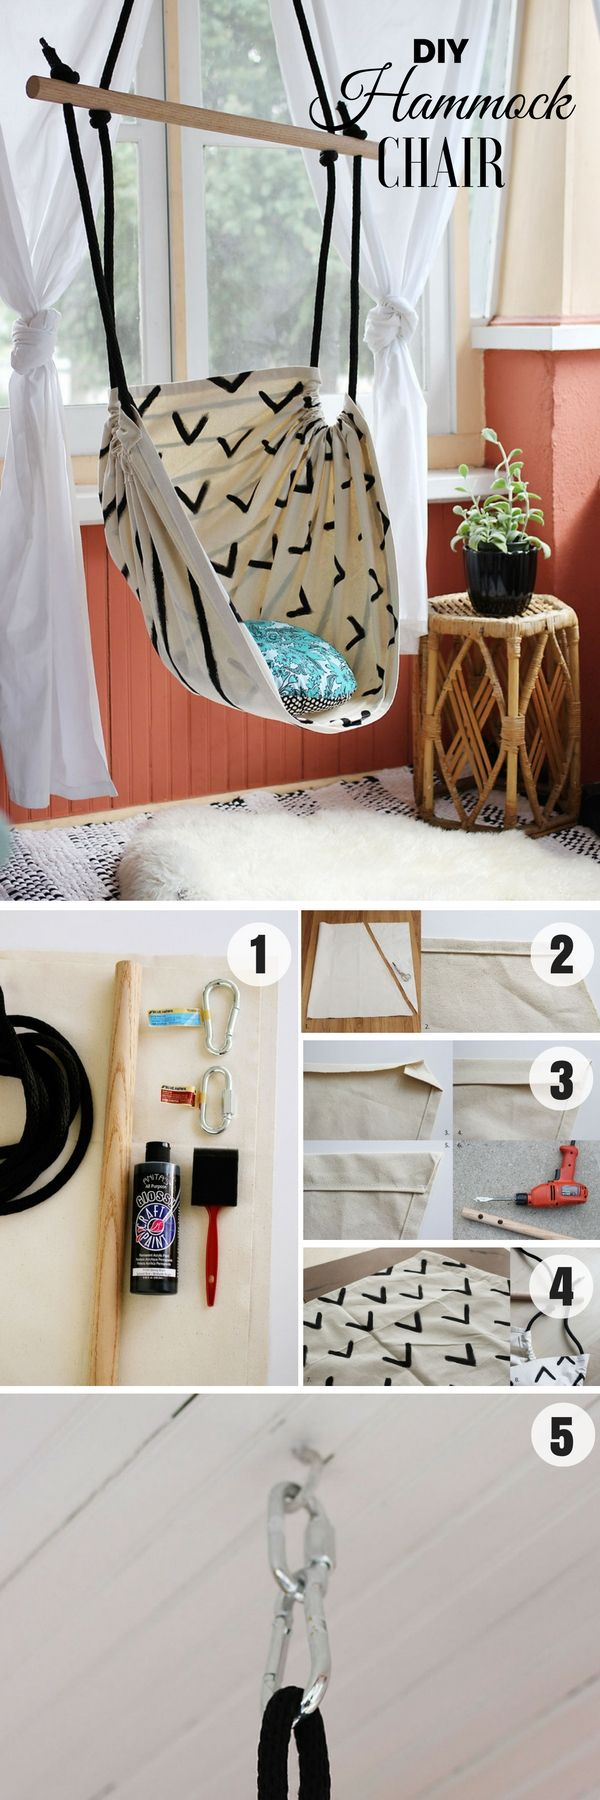 Ideas For Bedroom Decor best 25+ diy room ideas ideas only on pinterest | diy room decor